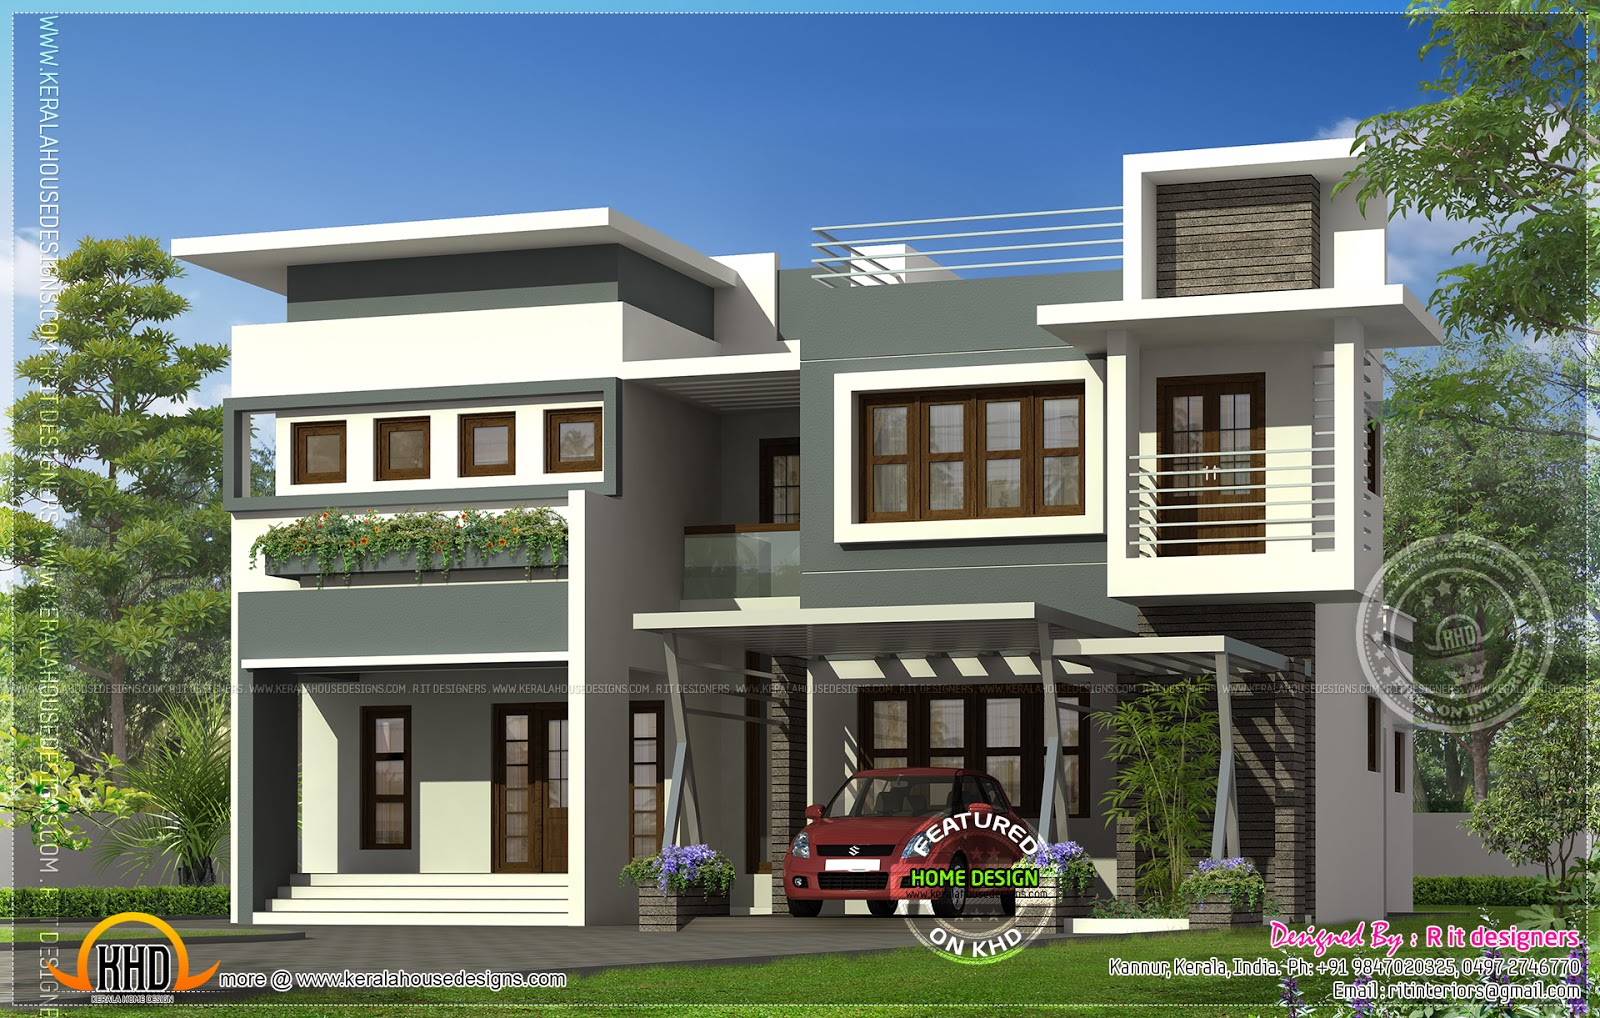 Modern contemporary residence design kerala home design for New house design